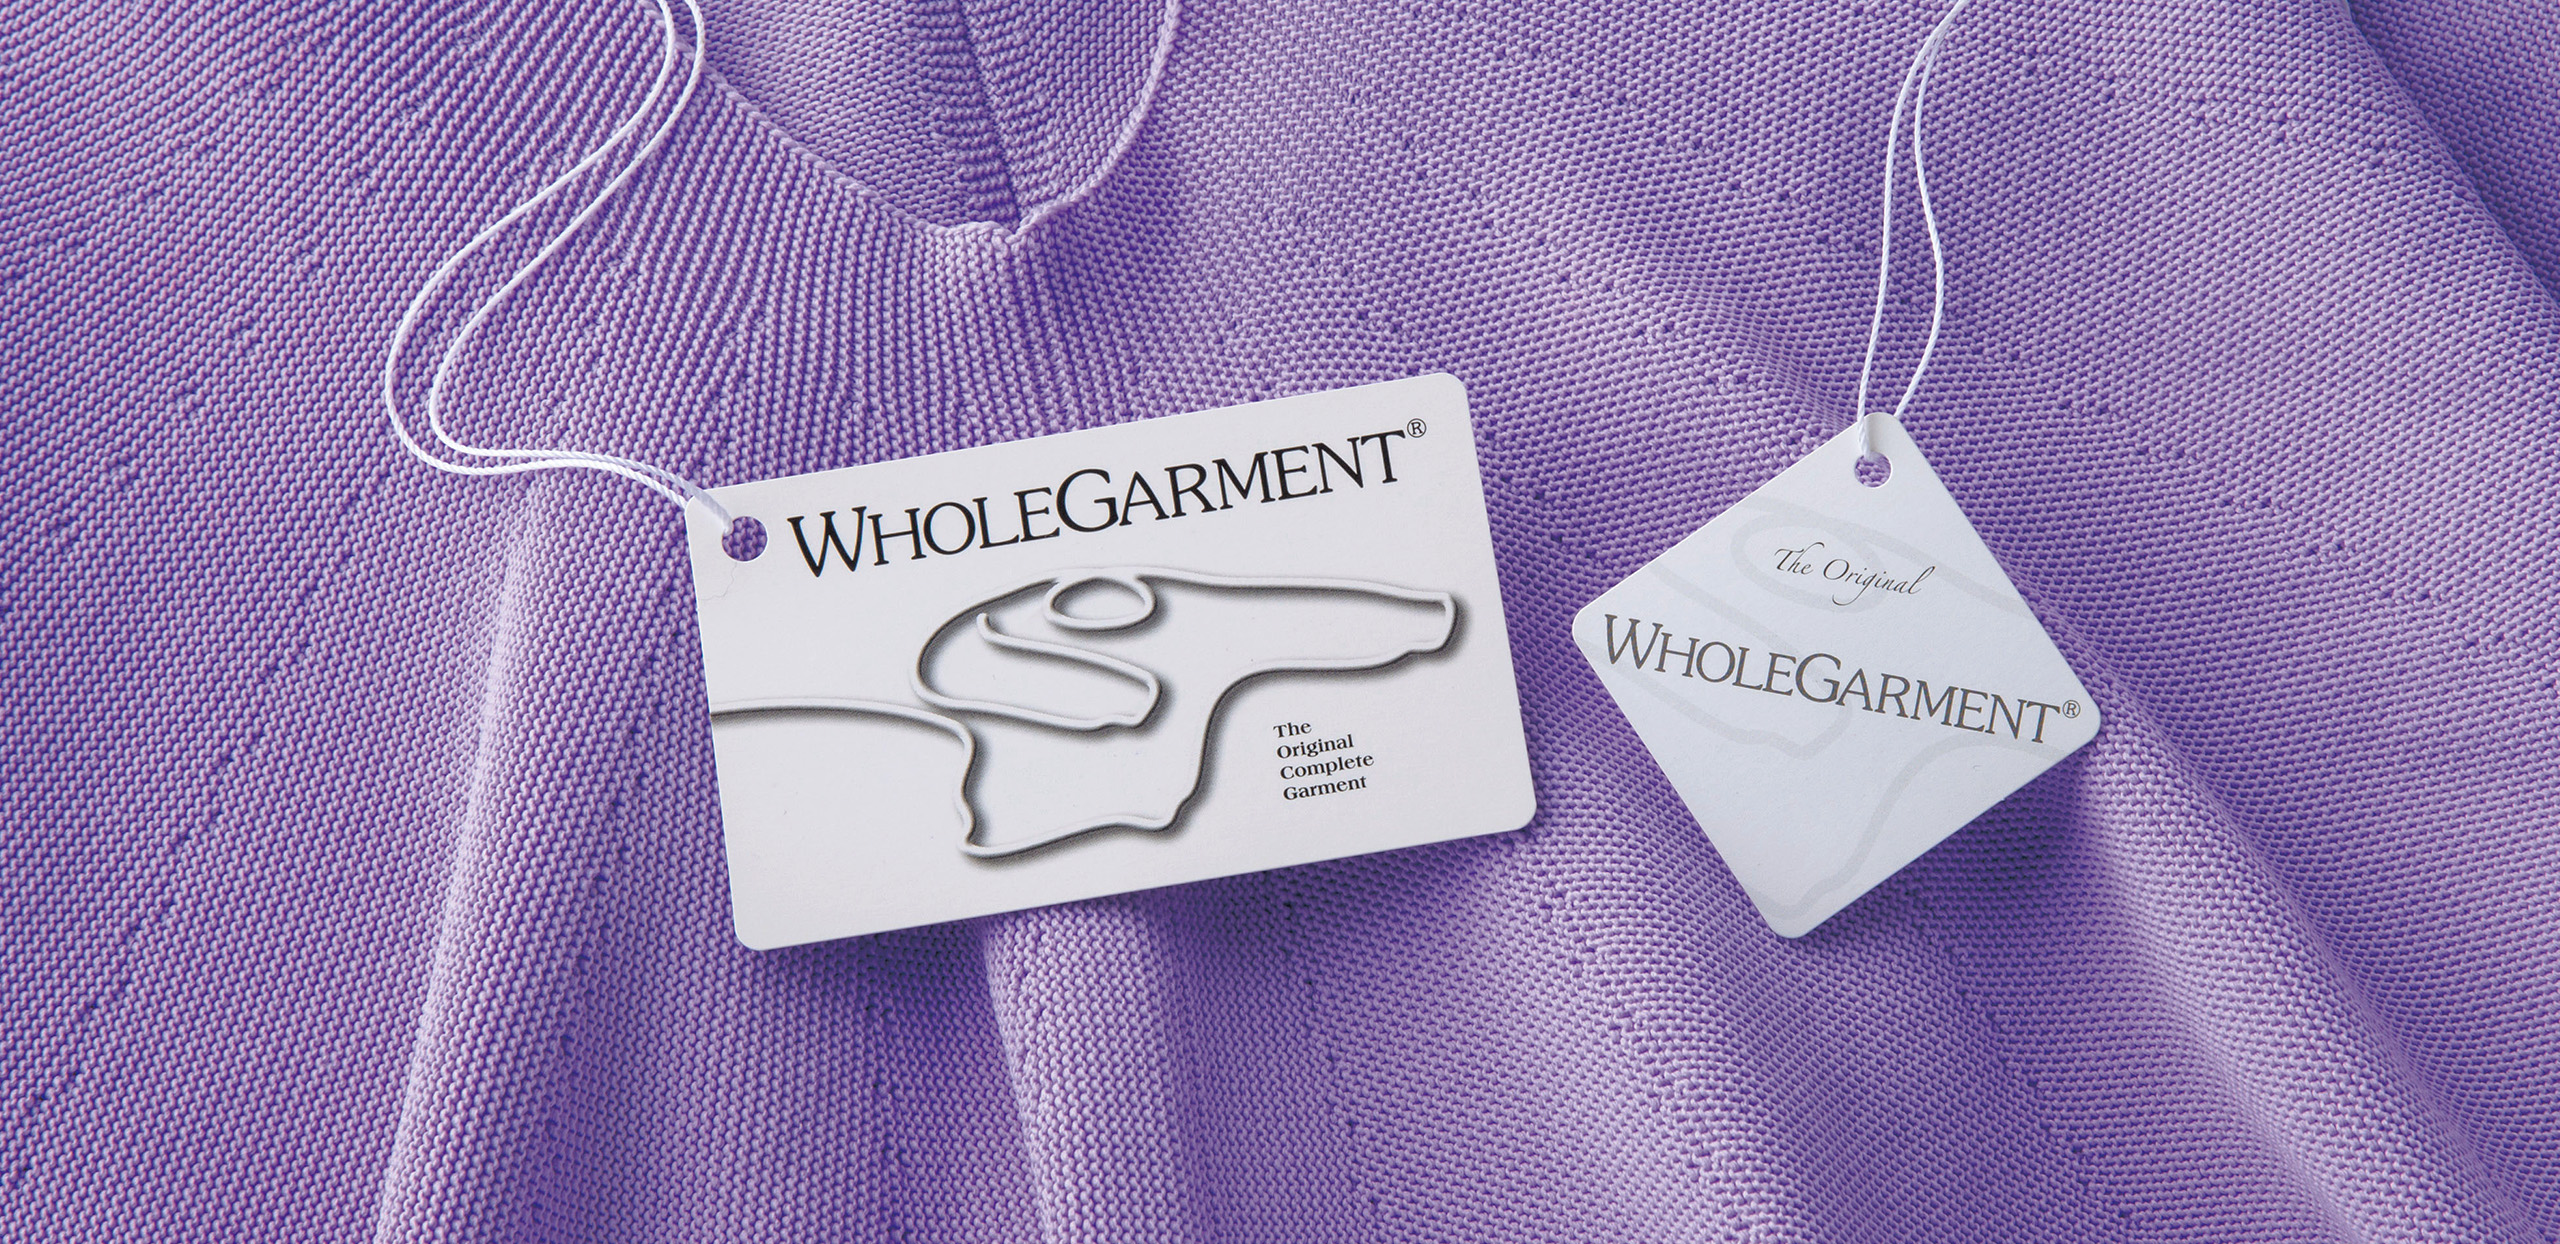 What is WHOLEGARMENT?